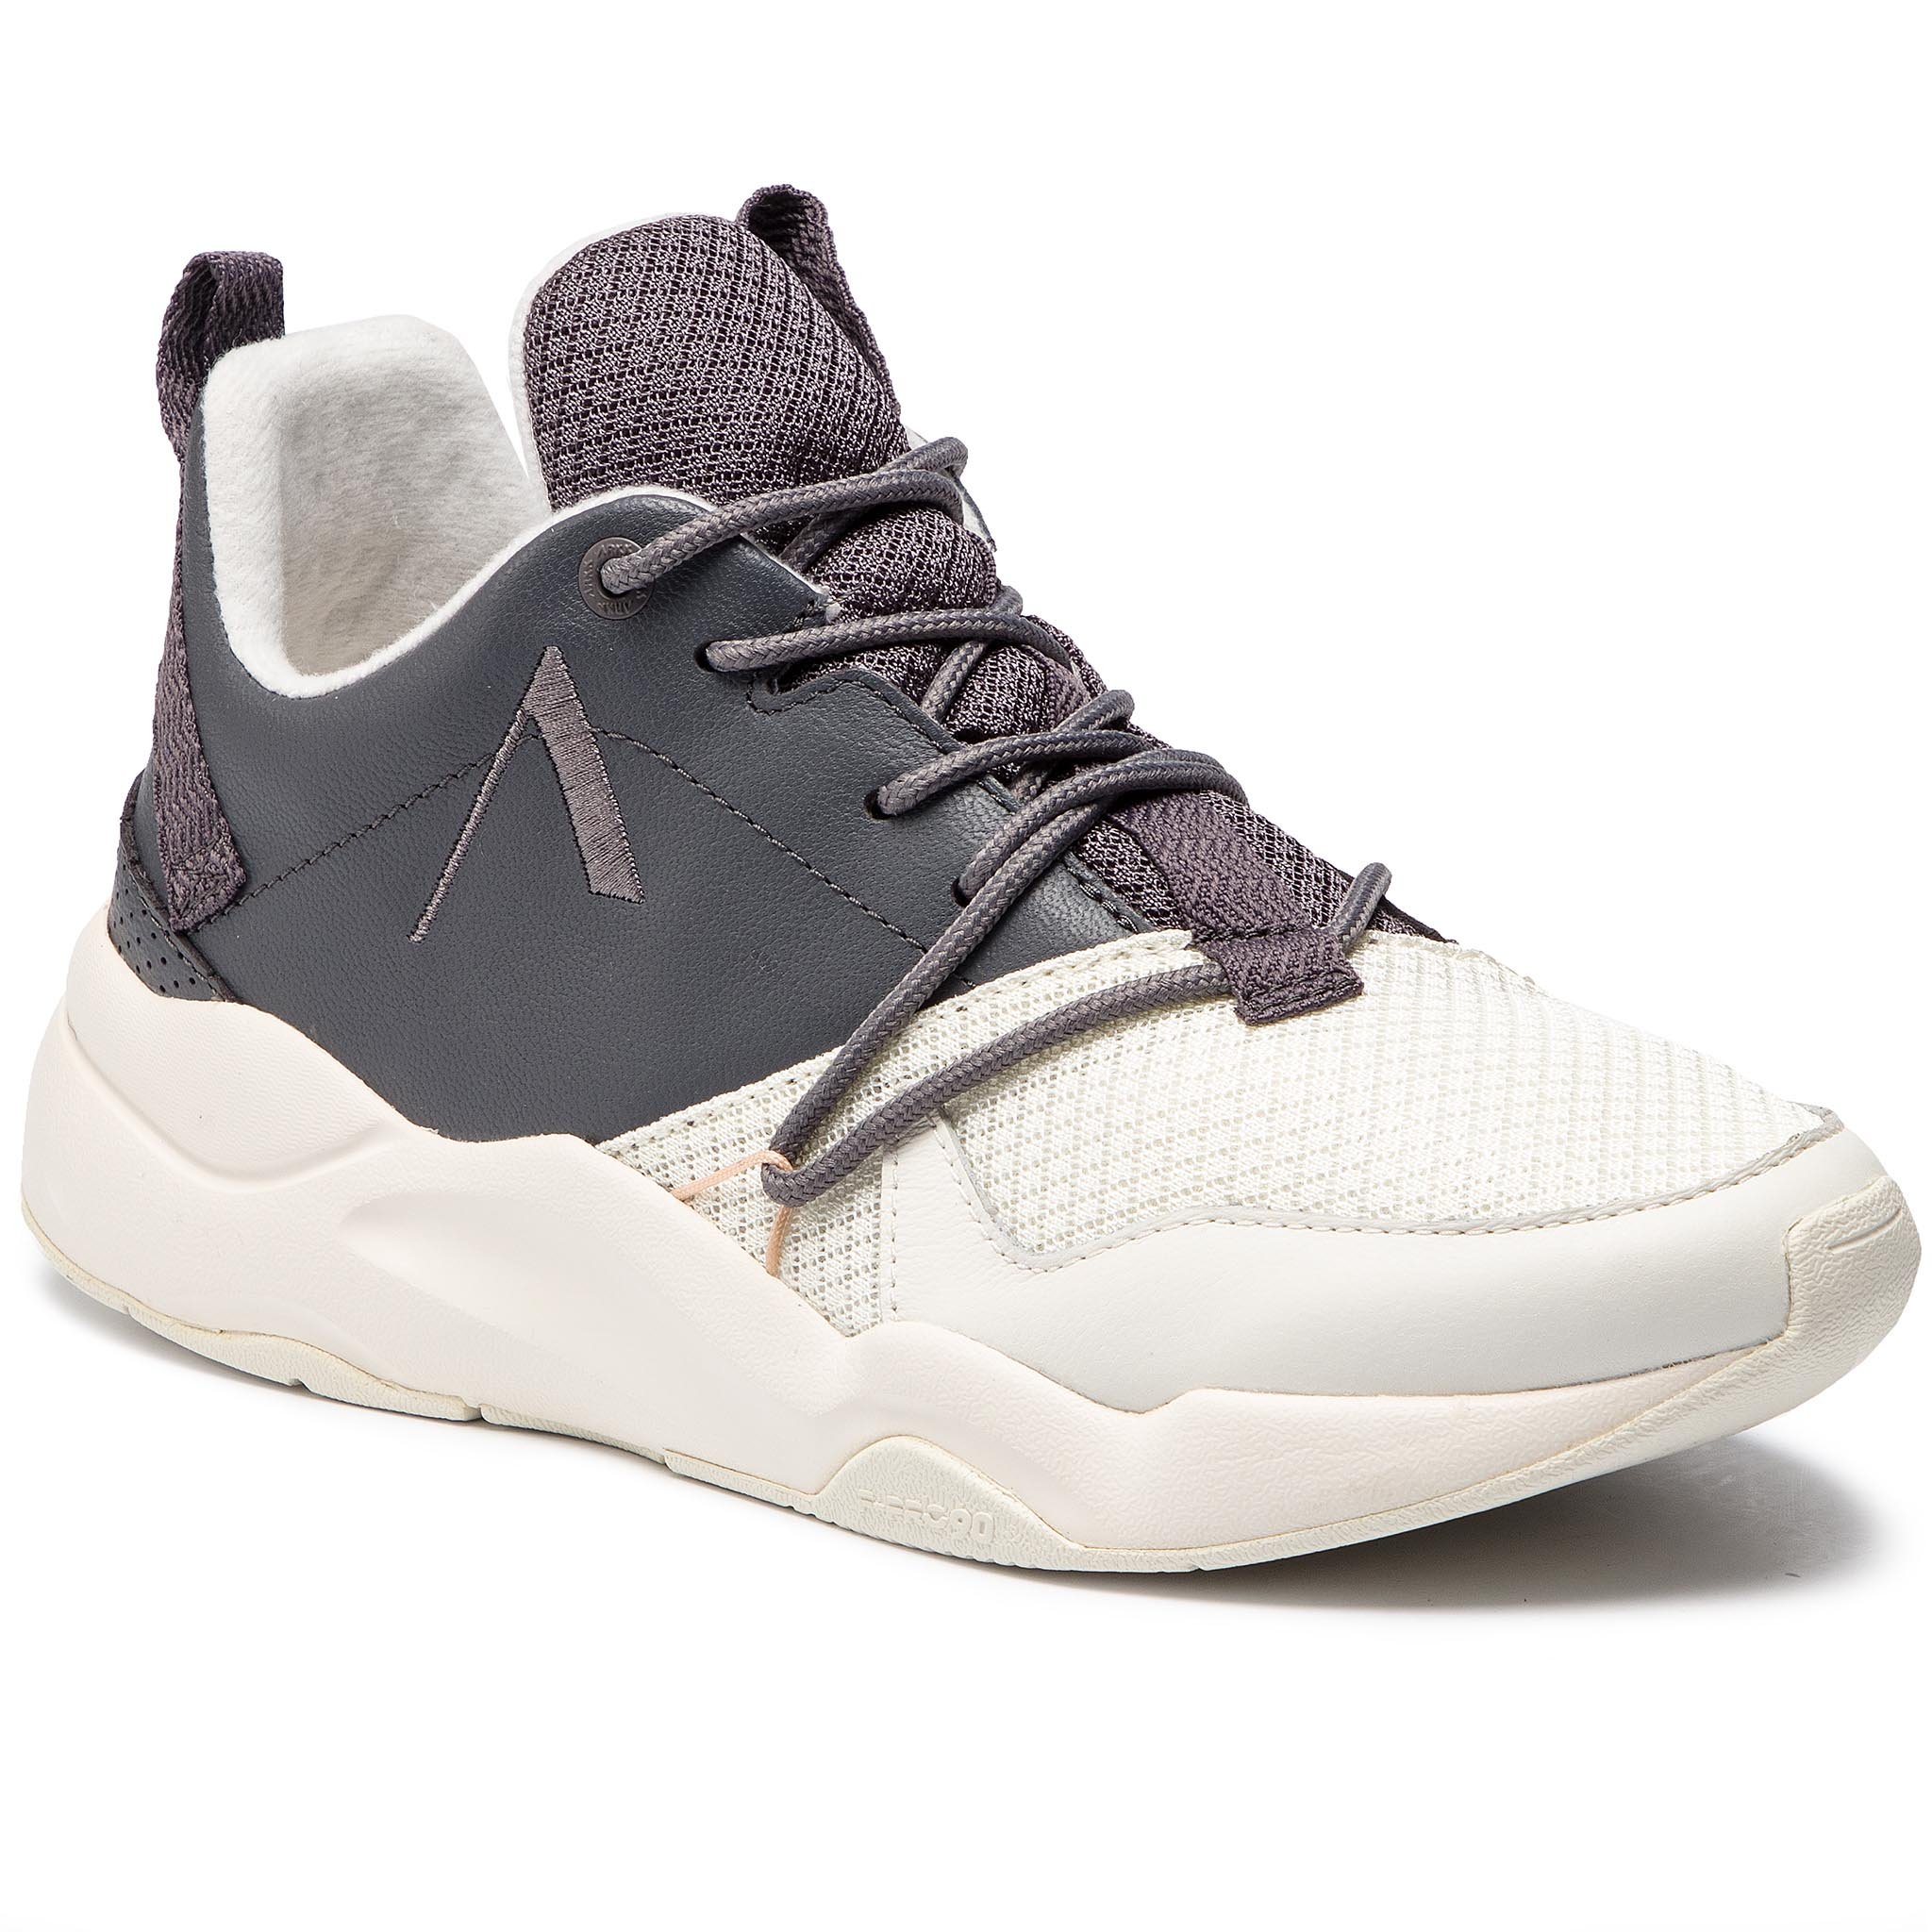 Image of Sneakers ARKK COPENHAGEN - Asymtrix Mesh F-PRO90 ML3004-2411-M Tornado Off White